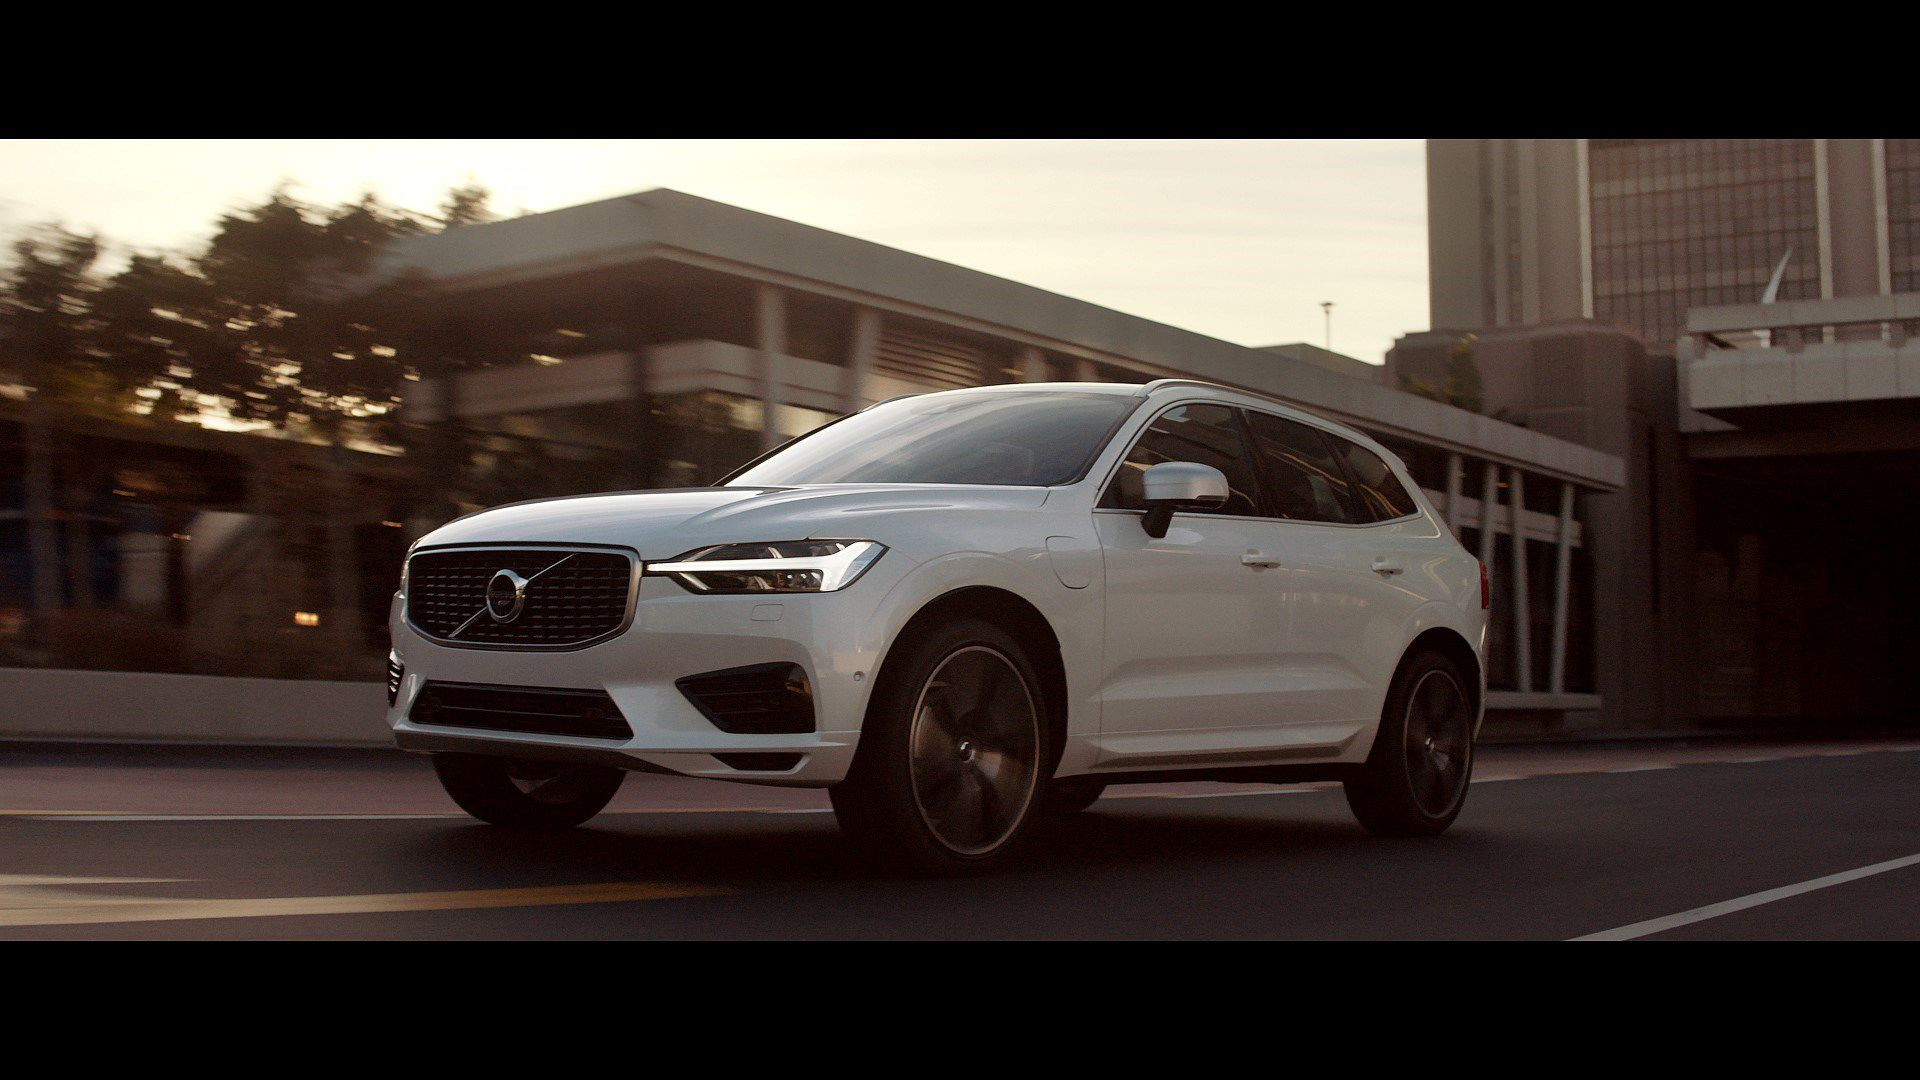 Volvo Xc60 The New Volvo Xc60 One Of The Safest Cars Ever Made Is Fully Loaded With New Technology Steer Assist Has Bee Volvo Xc60 Volvo Cars City Safety